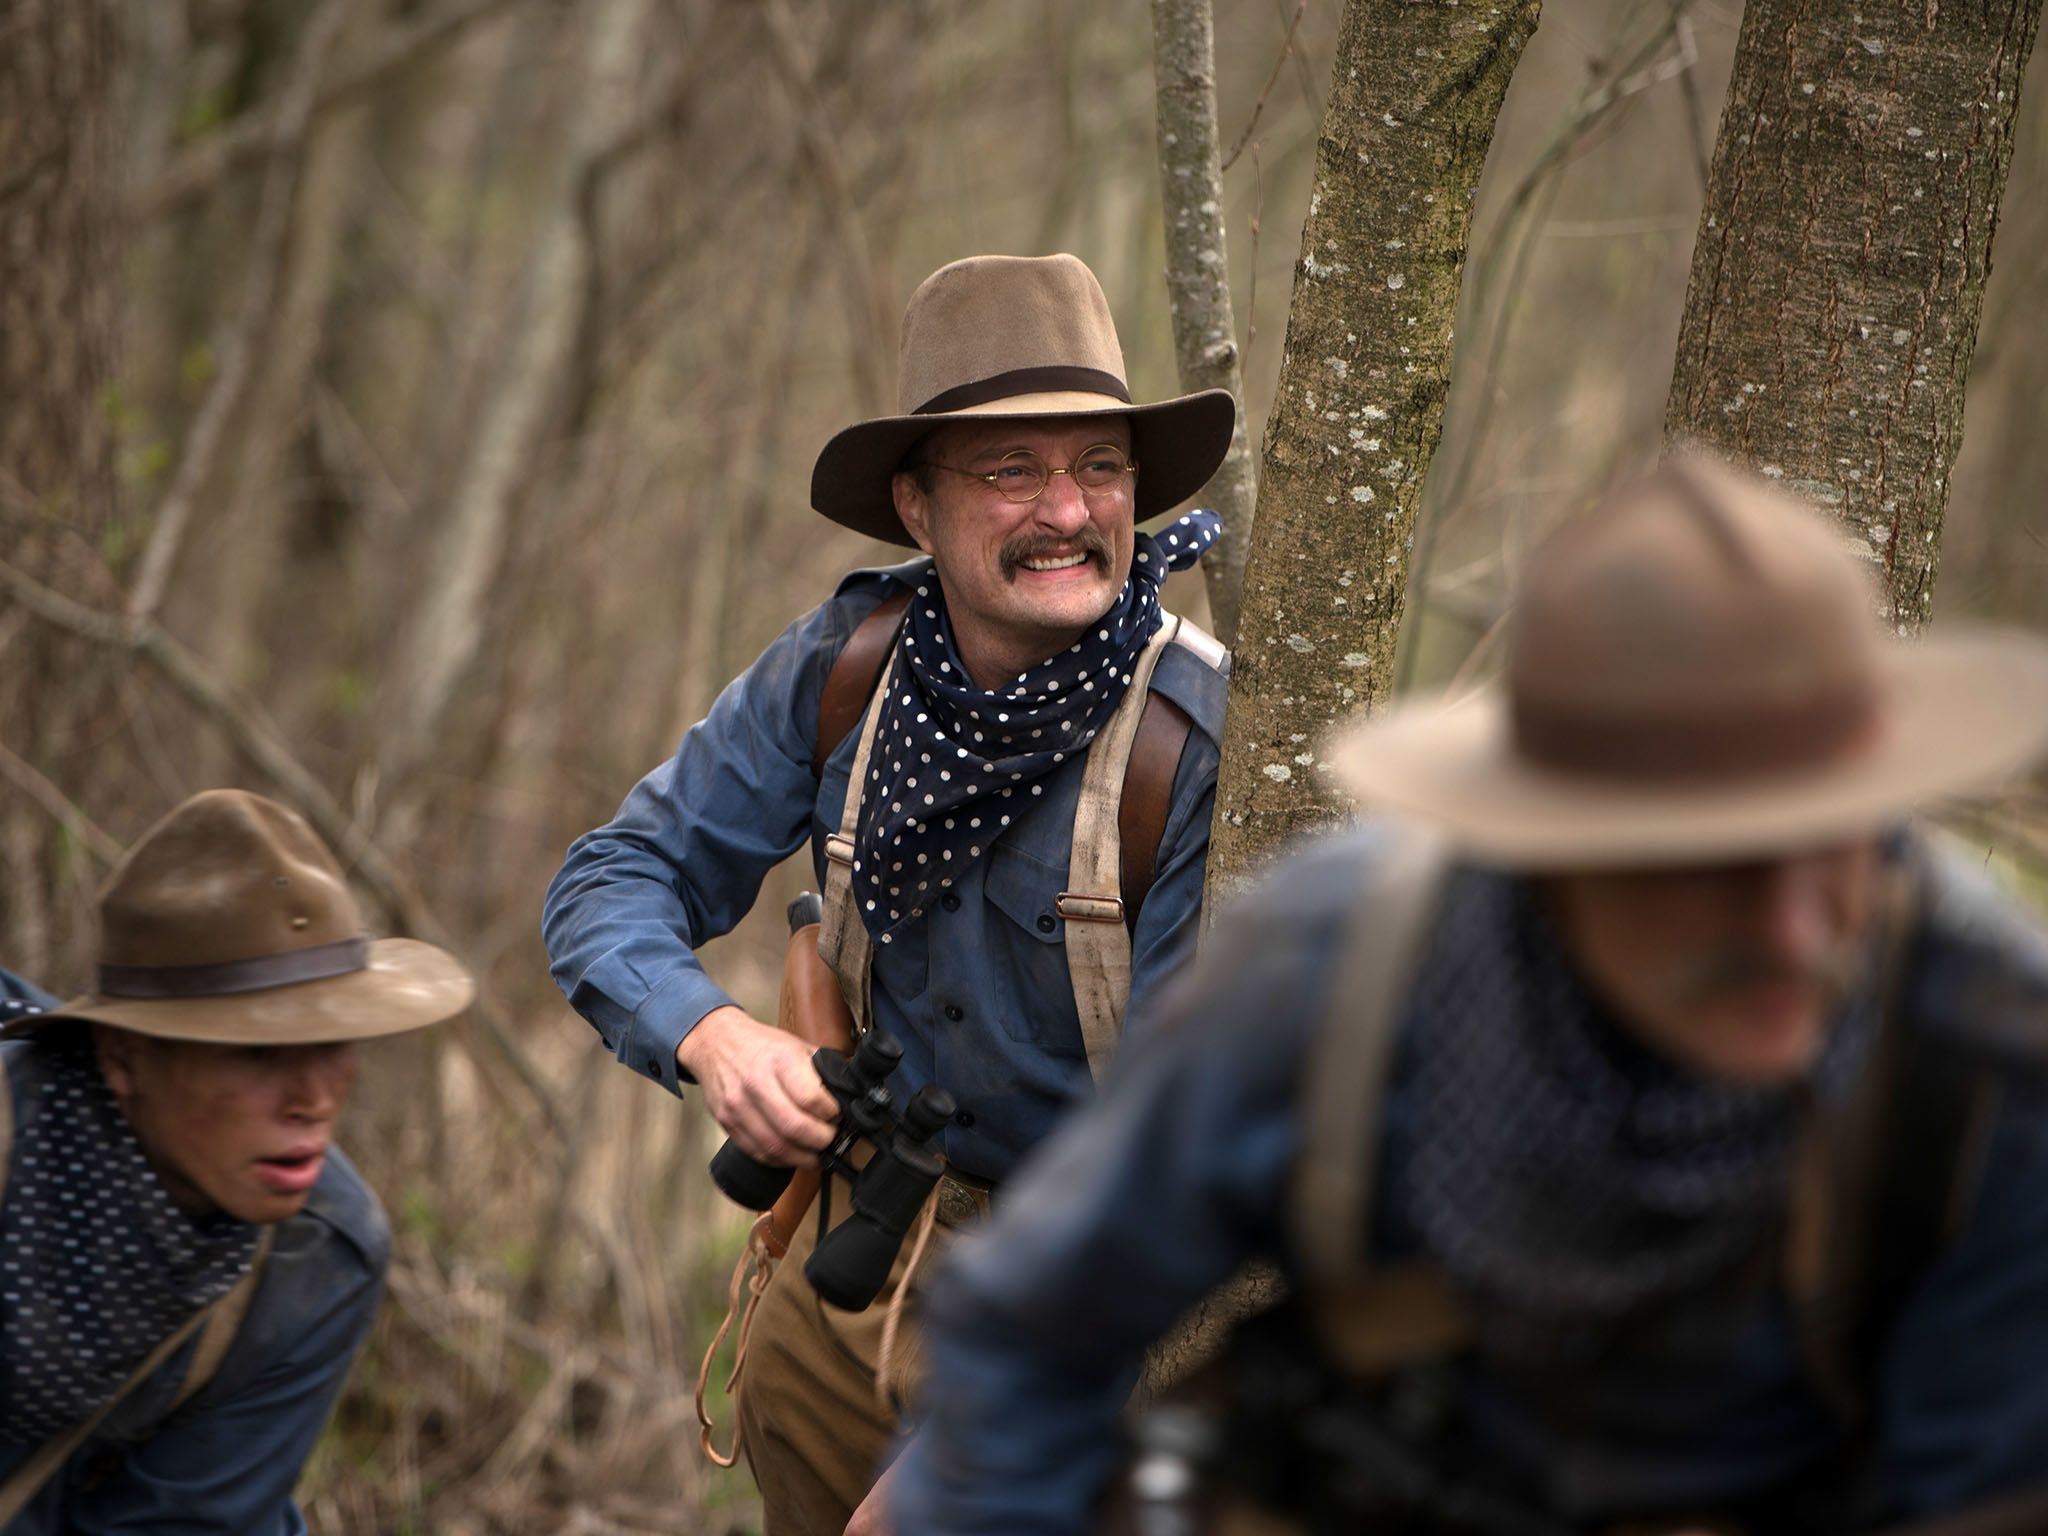 Reenactment- Jack Elliot as Teddy Roosevelt, with two other Rough Riders during The Battle of... [Photo of the day - September 2016]